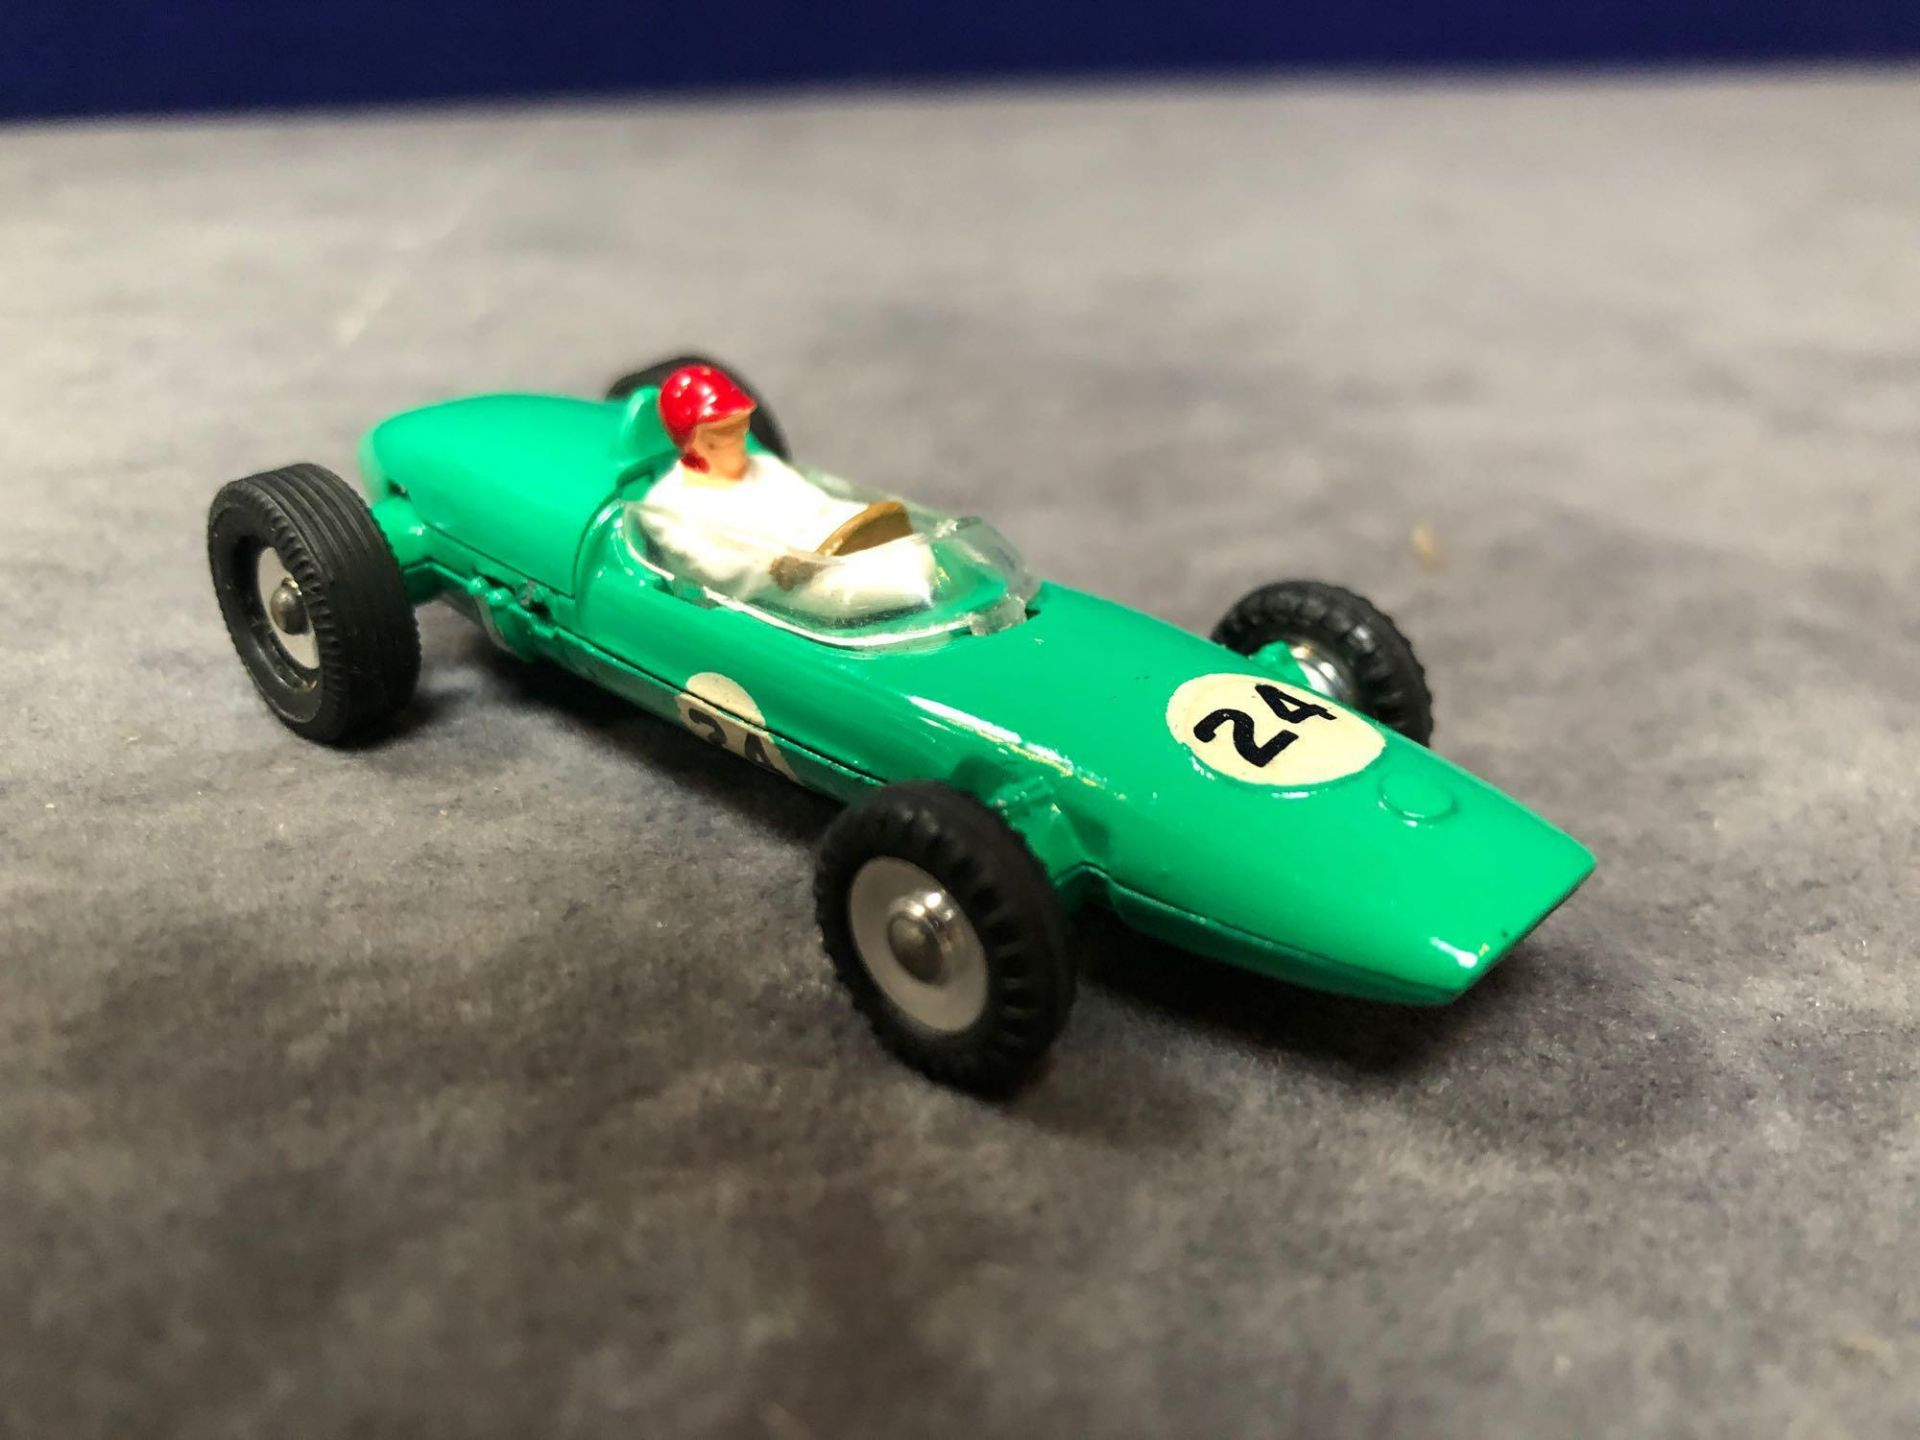 Dinky #241 Lotus Racing Car Green - White Driver With Red Helmet. RN #24 mint in firm box 1962-1970 - Image 2 of 4